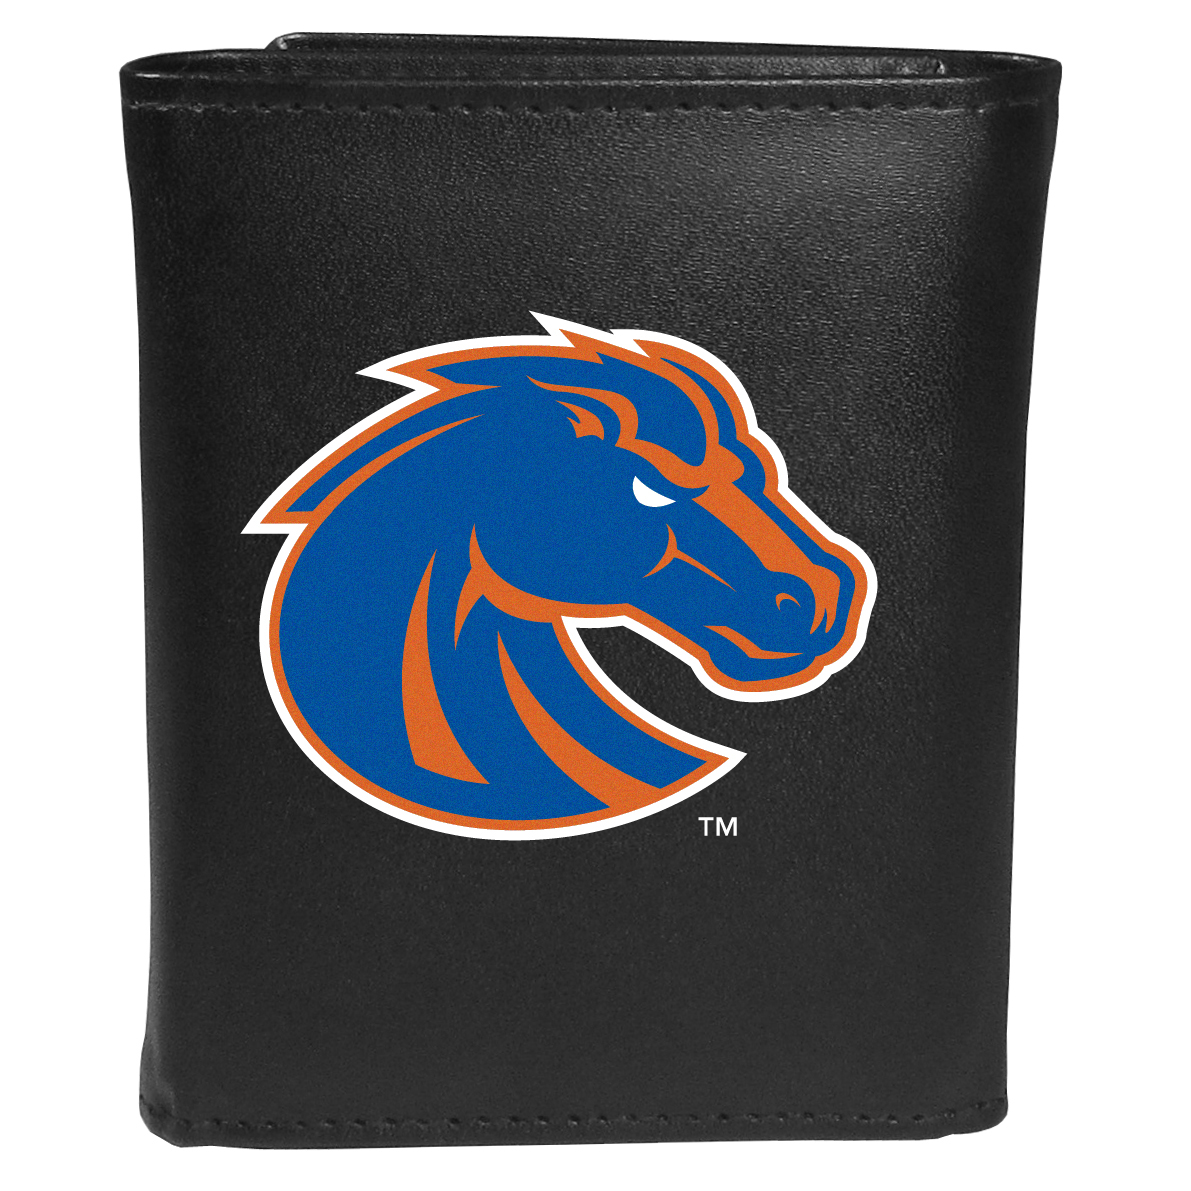 Boise St. Broncos Tri-fold Wallet Large Logo - Sports fans do not have to sacrifice style with this classic tri-fold wallet that sports theBoise St. Broncos?extra large logo. This men's fashion accessory has a leather grain look and expert craftmanship for a quality wallet at a great price. The wallet features inner credit card slots, windowed ID slot and a large billfold pocket. The front of the wallet features an extra large printed team logo.